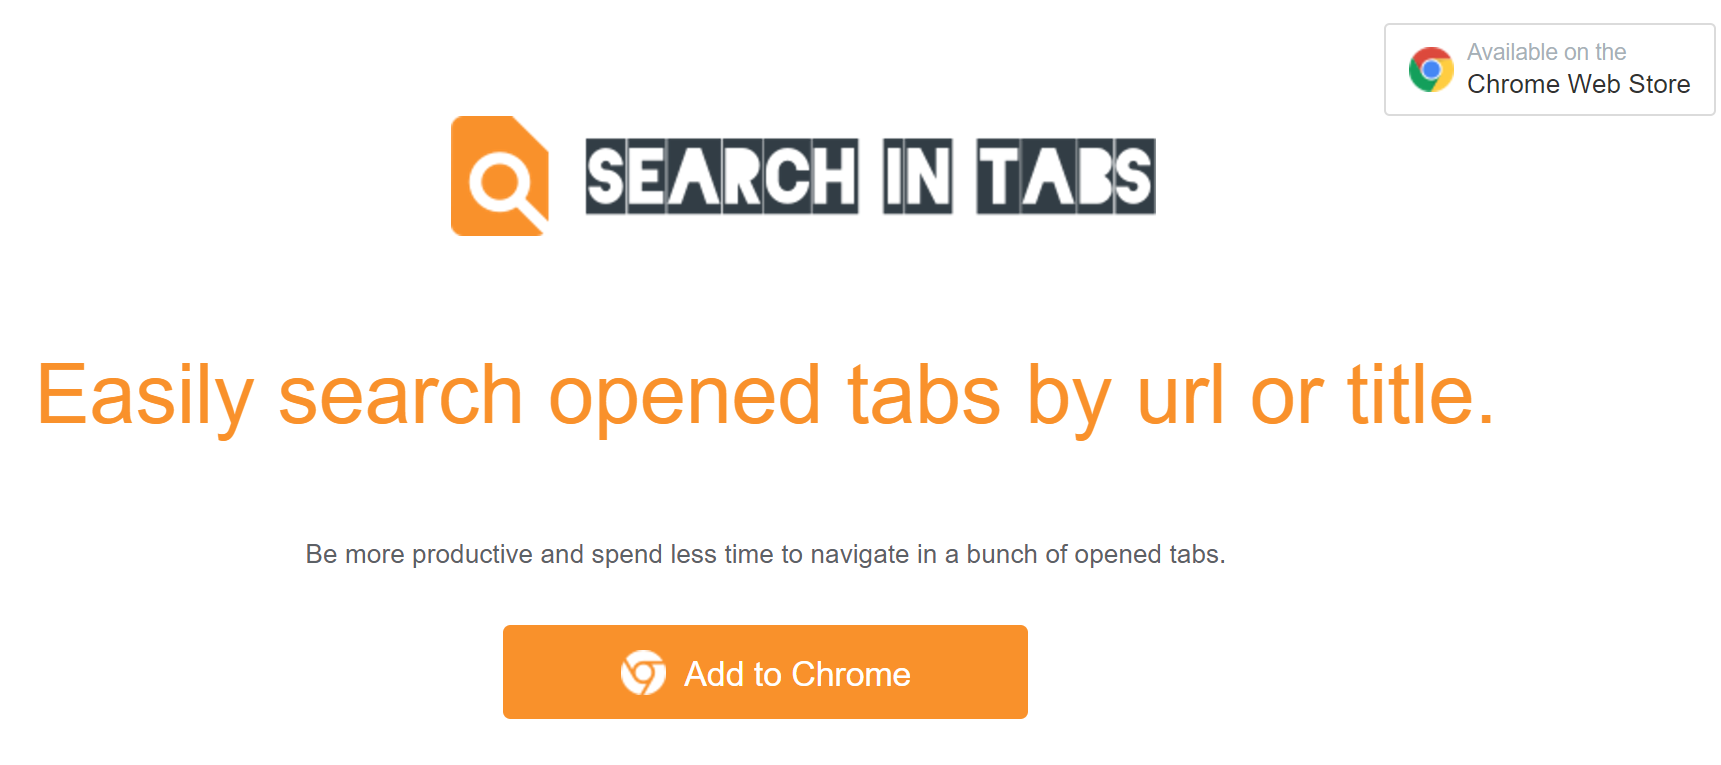 ads by Search In Tabs